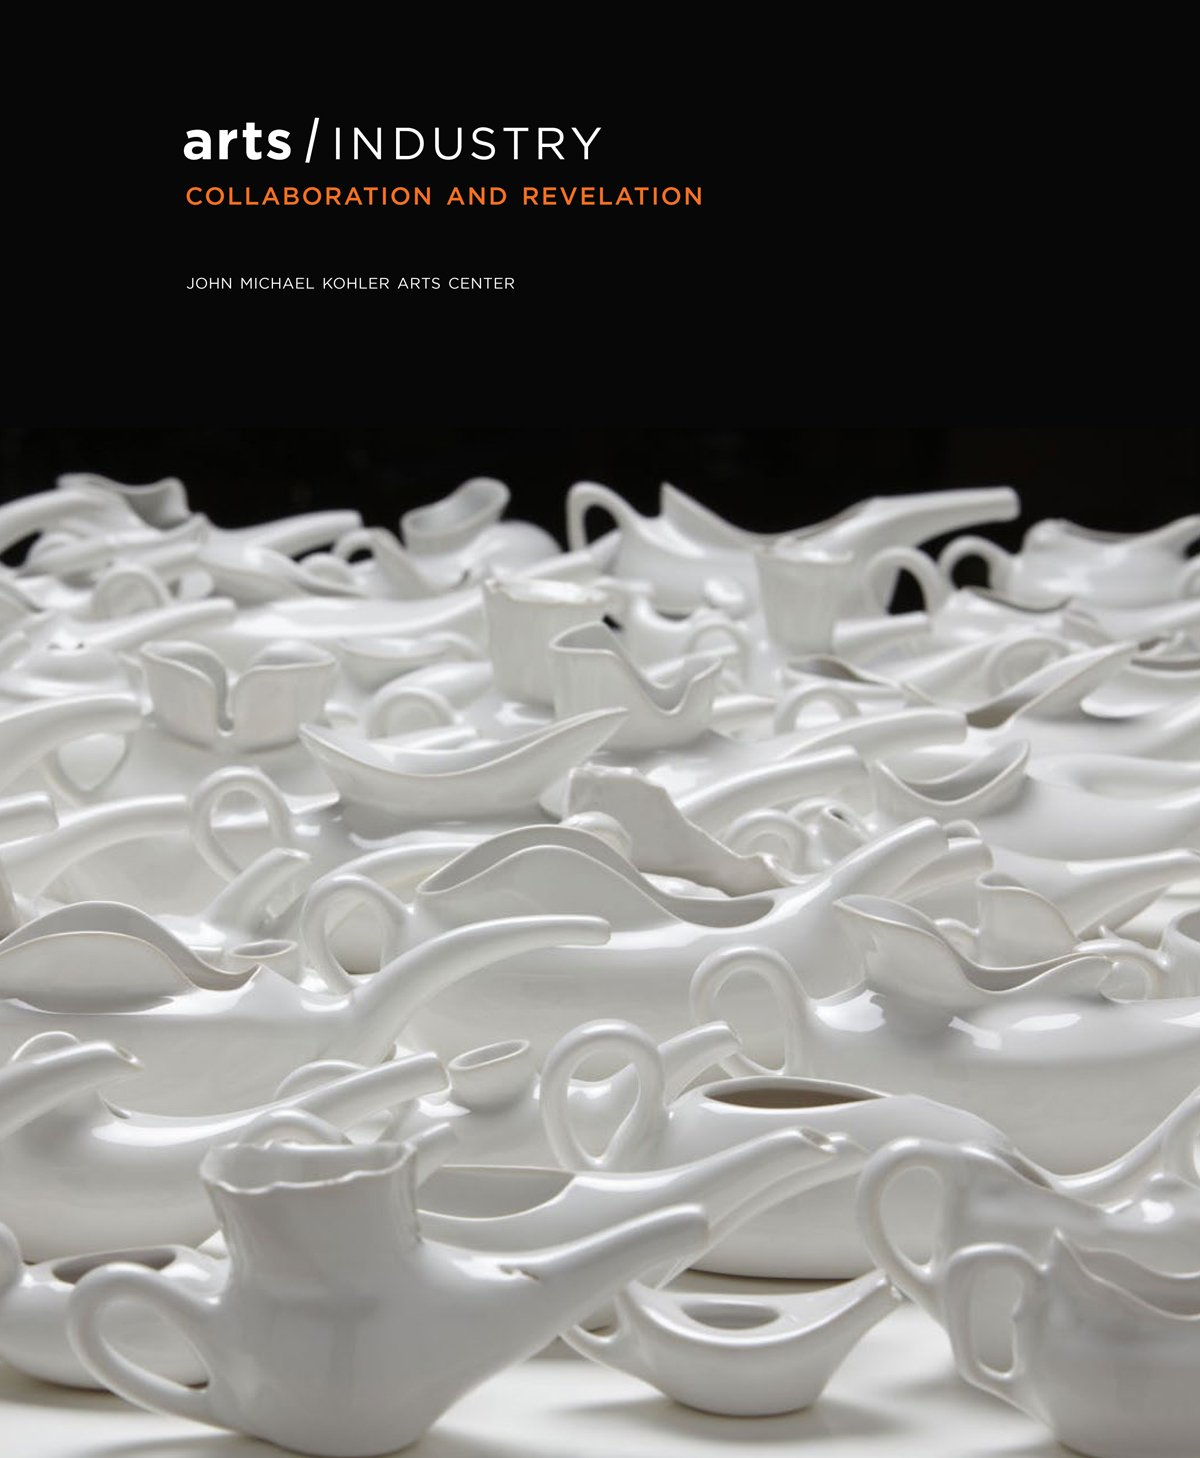 Arts/Industry: Collaboration and Revelation by John Michael Kohler Arts Center